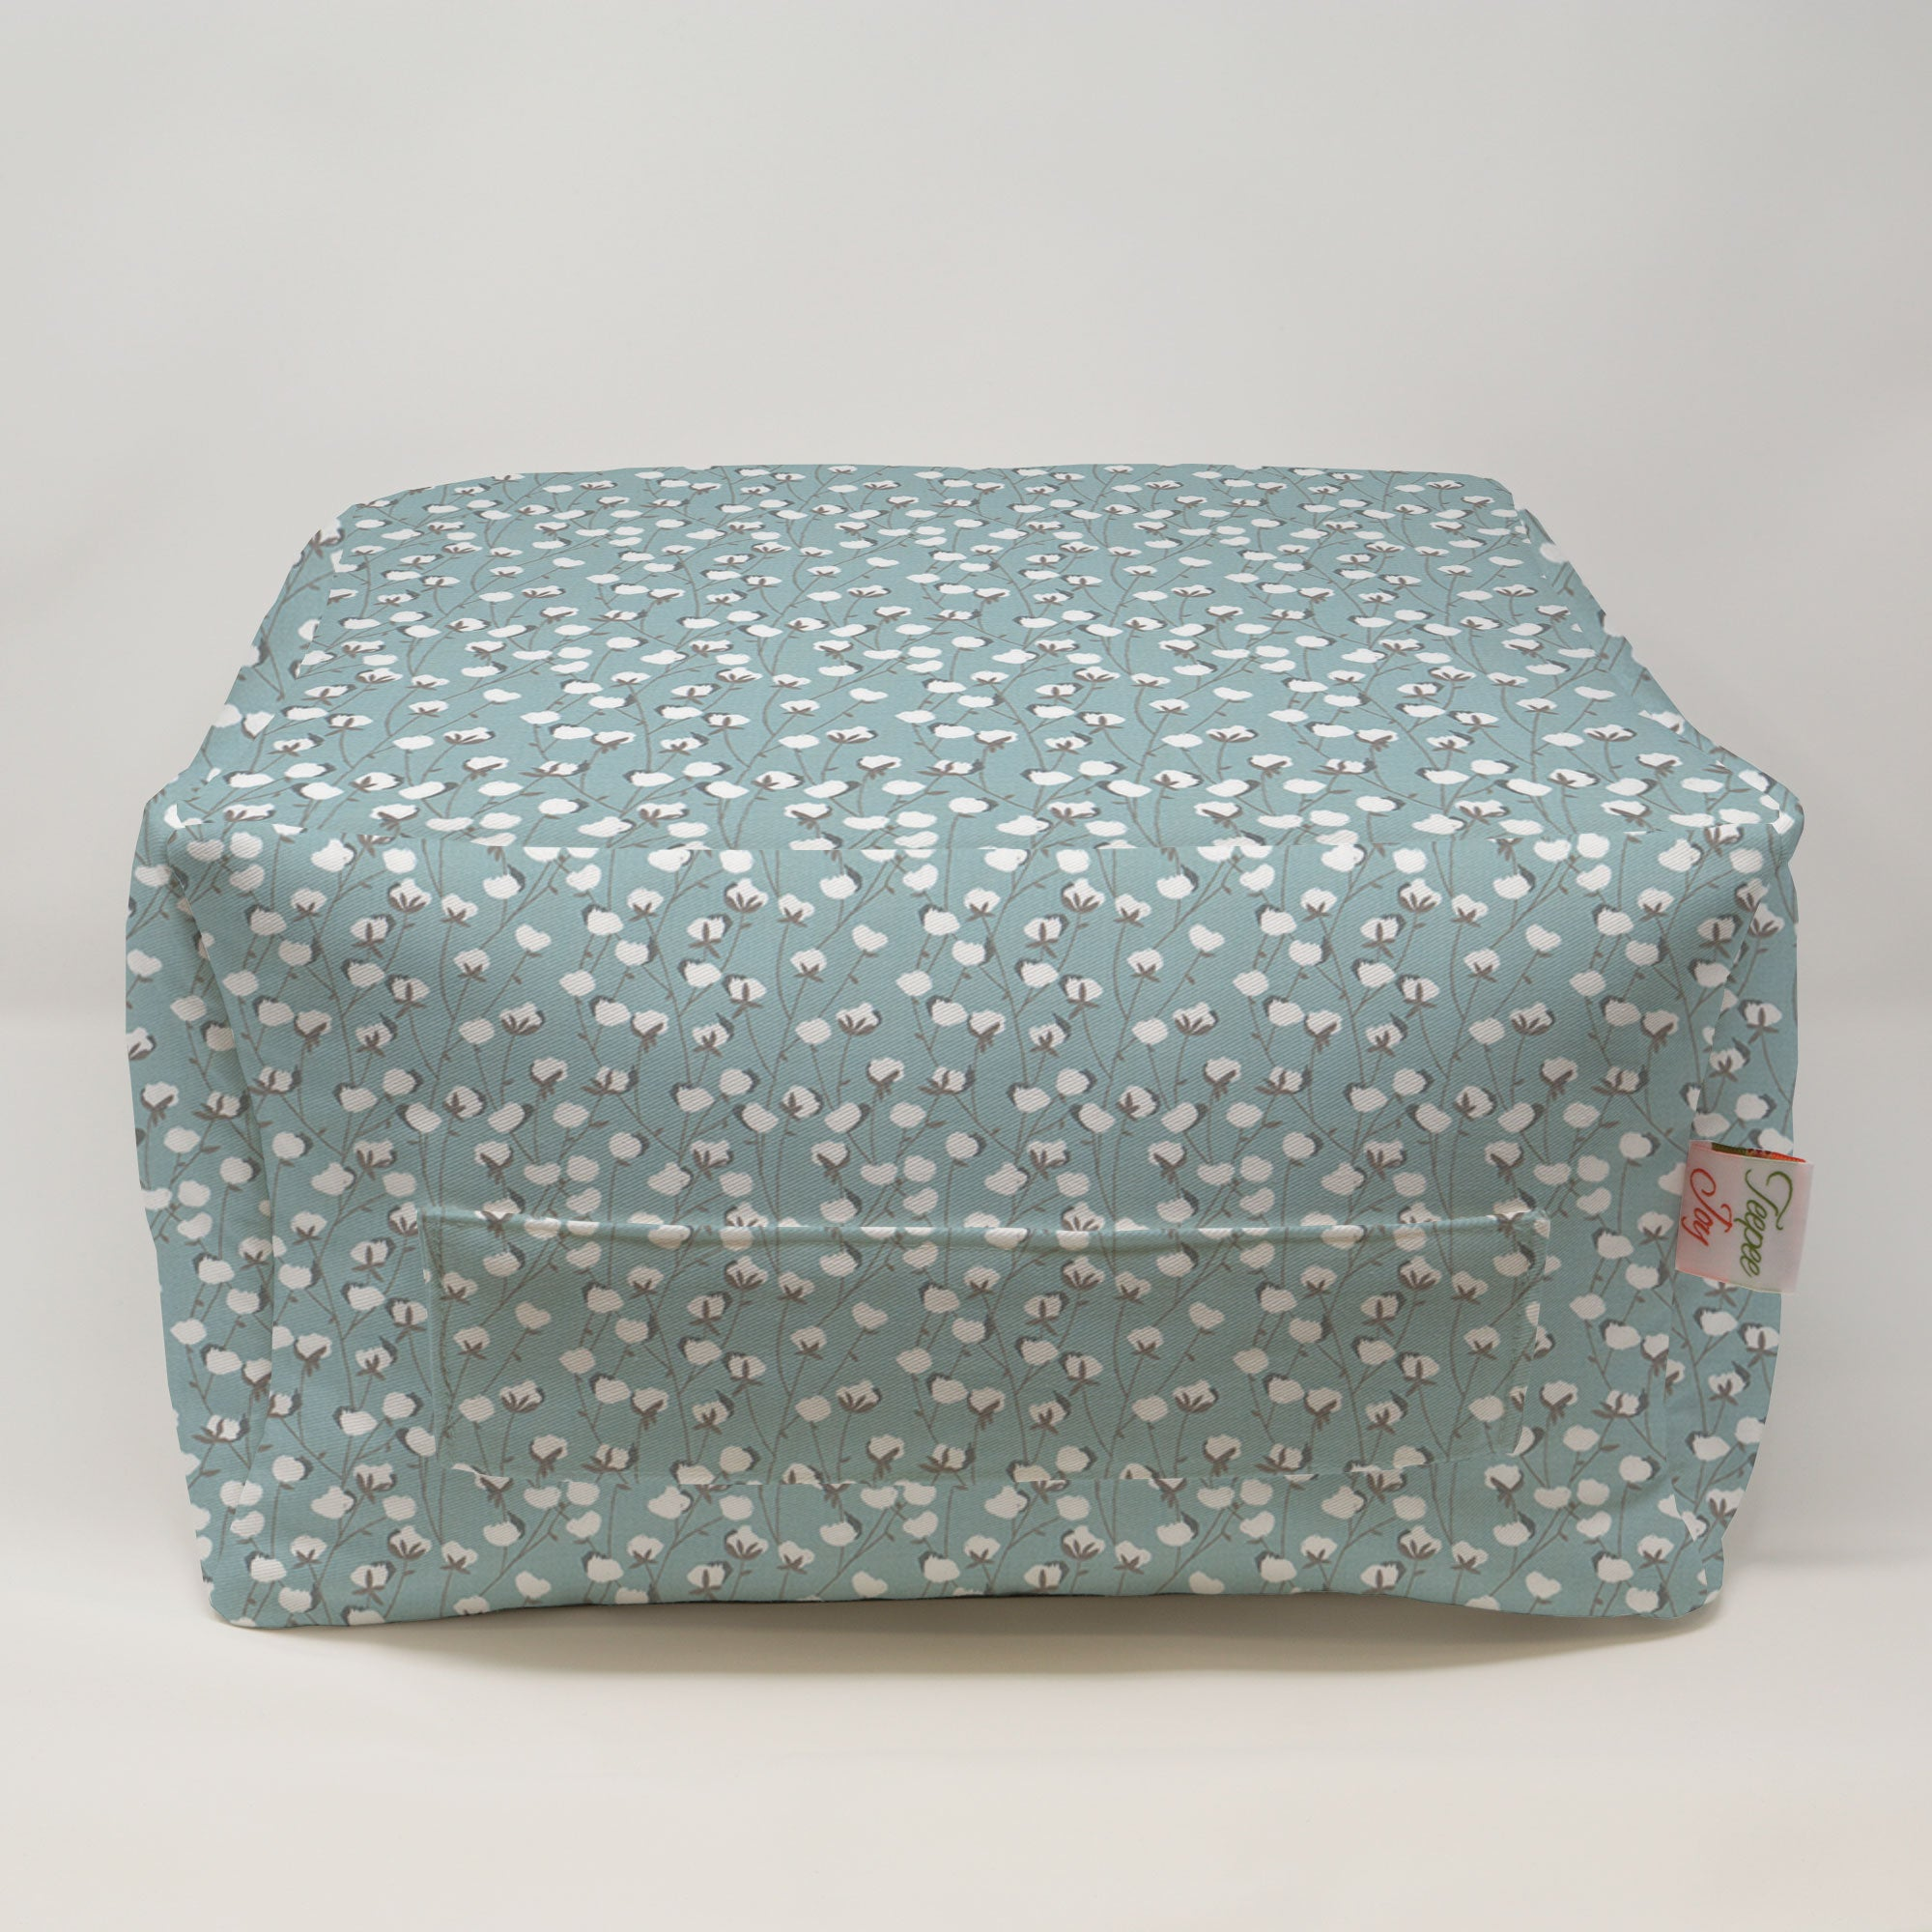 Kids Pouf - Cotton Belt Spa Blue